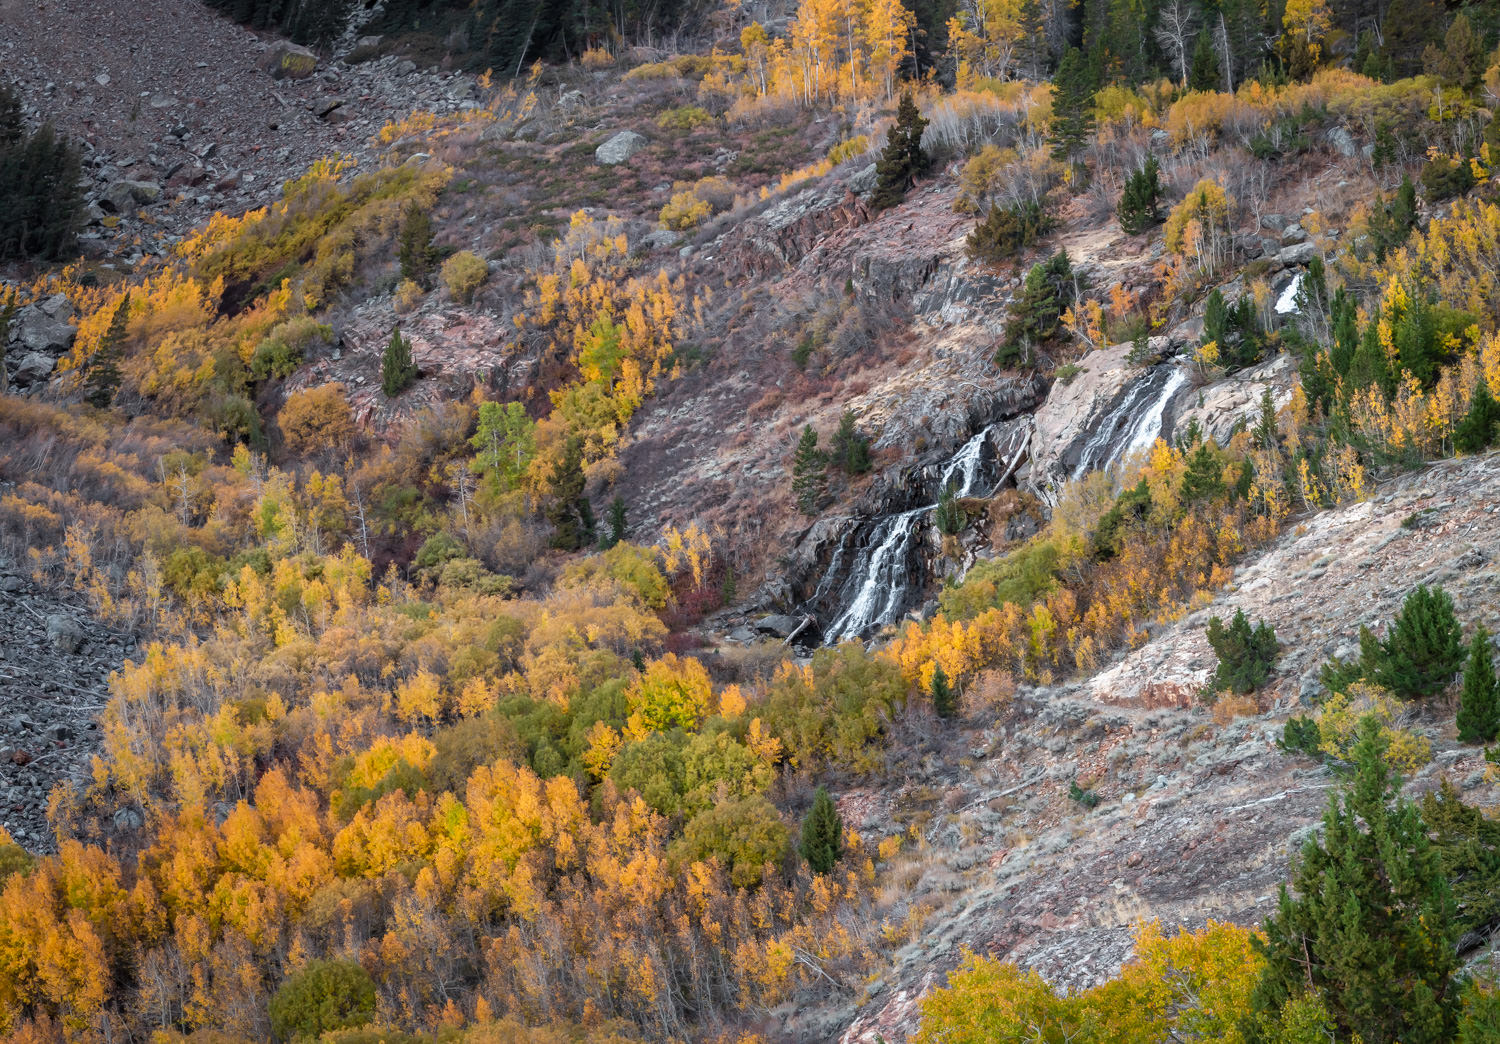 Lundy canyon waterfall (October 2018)